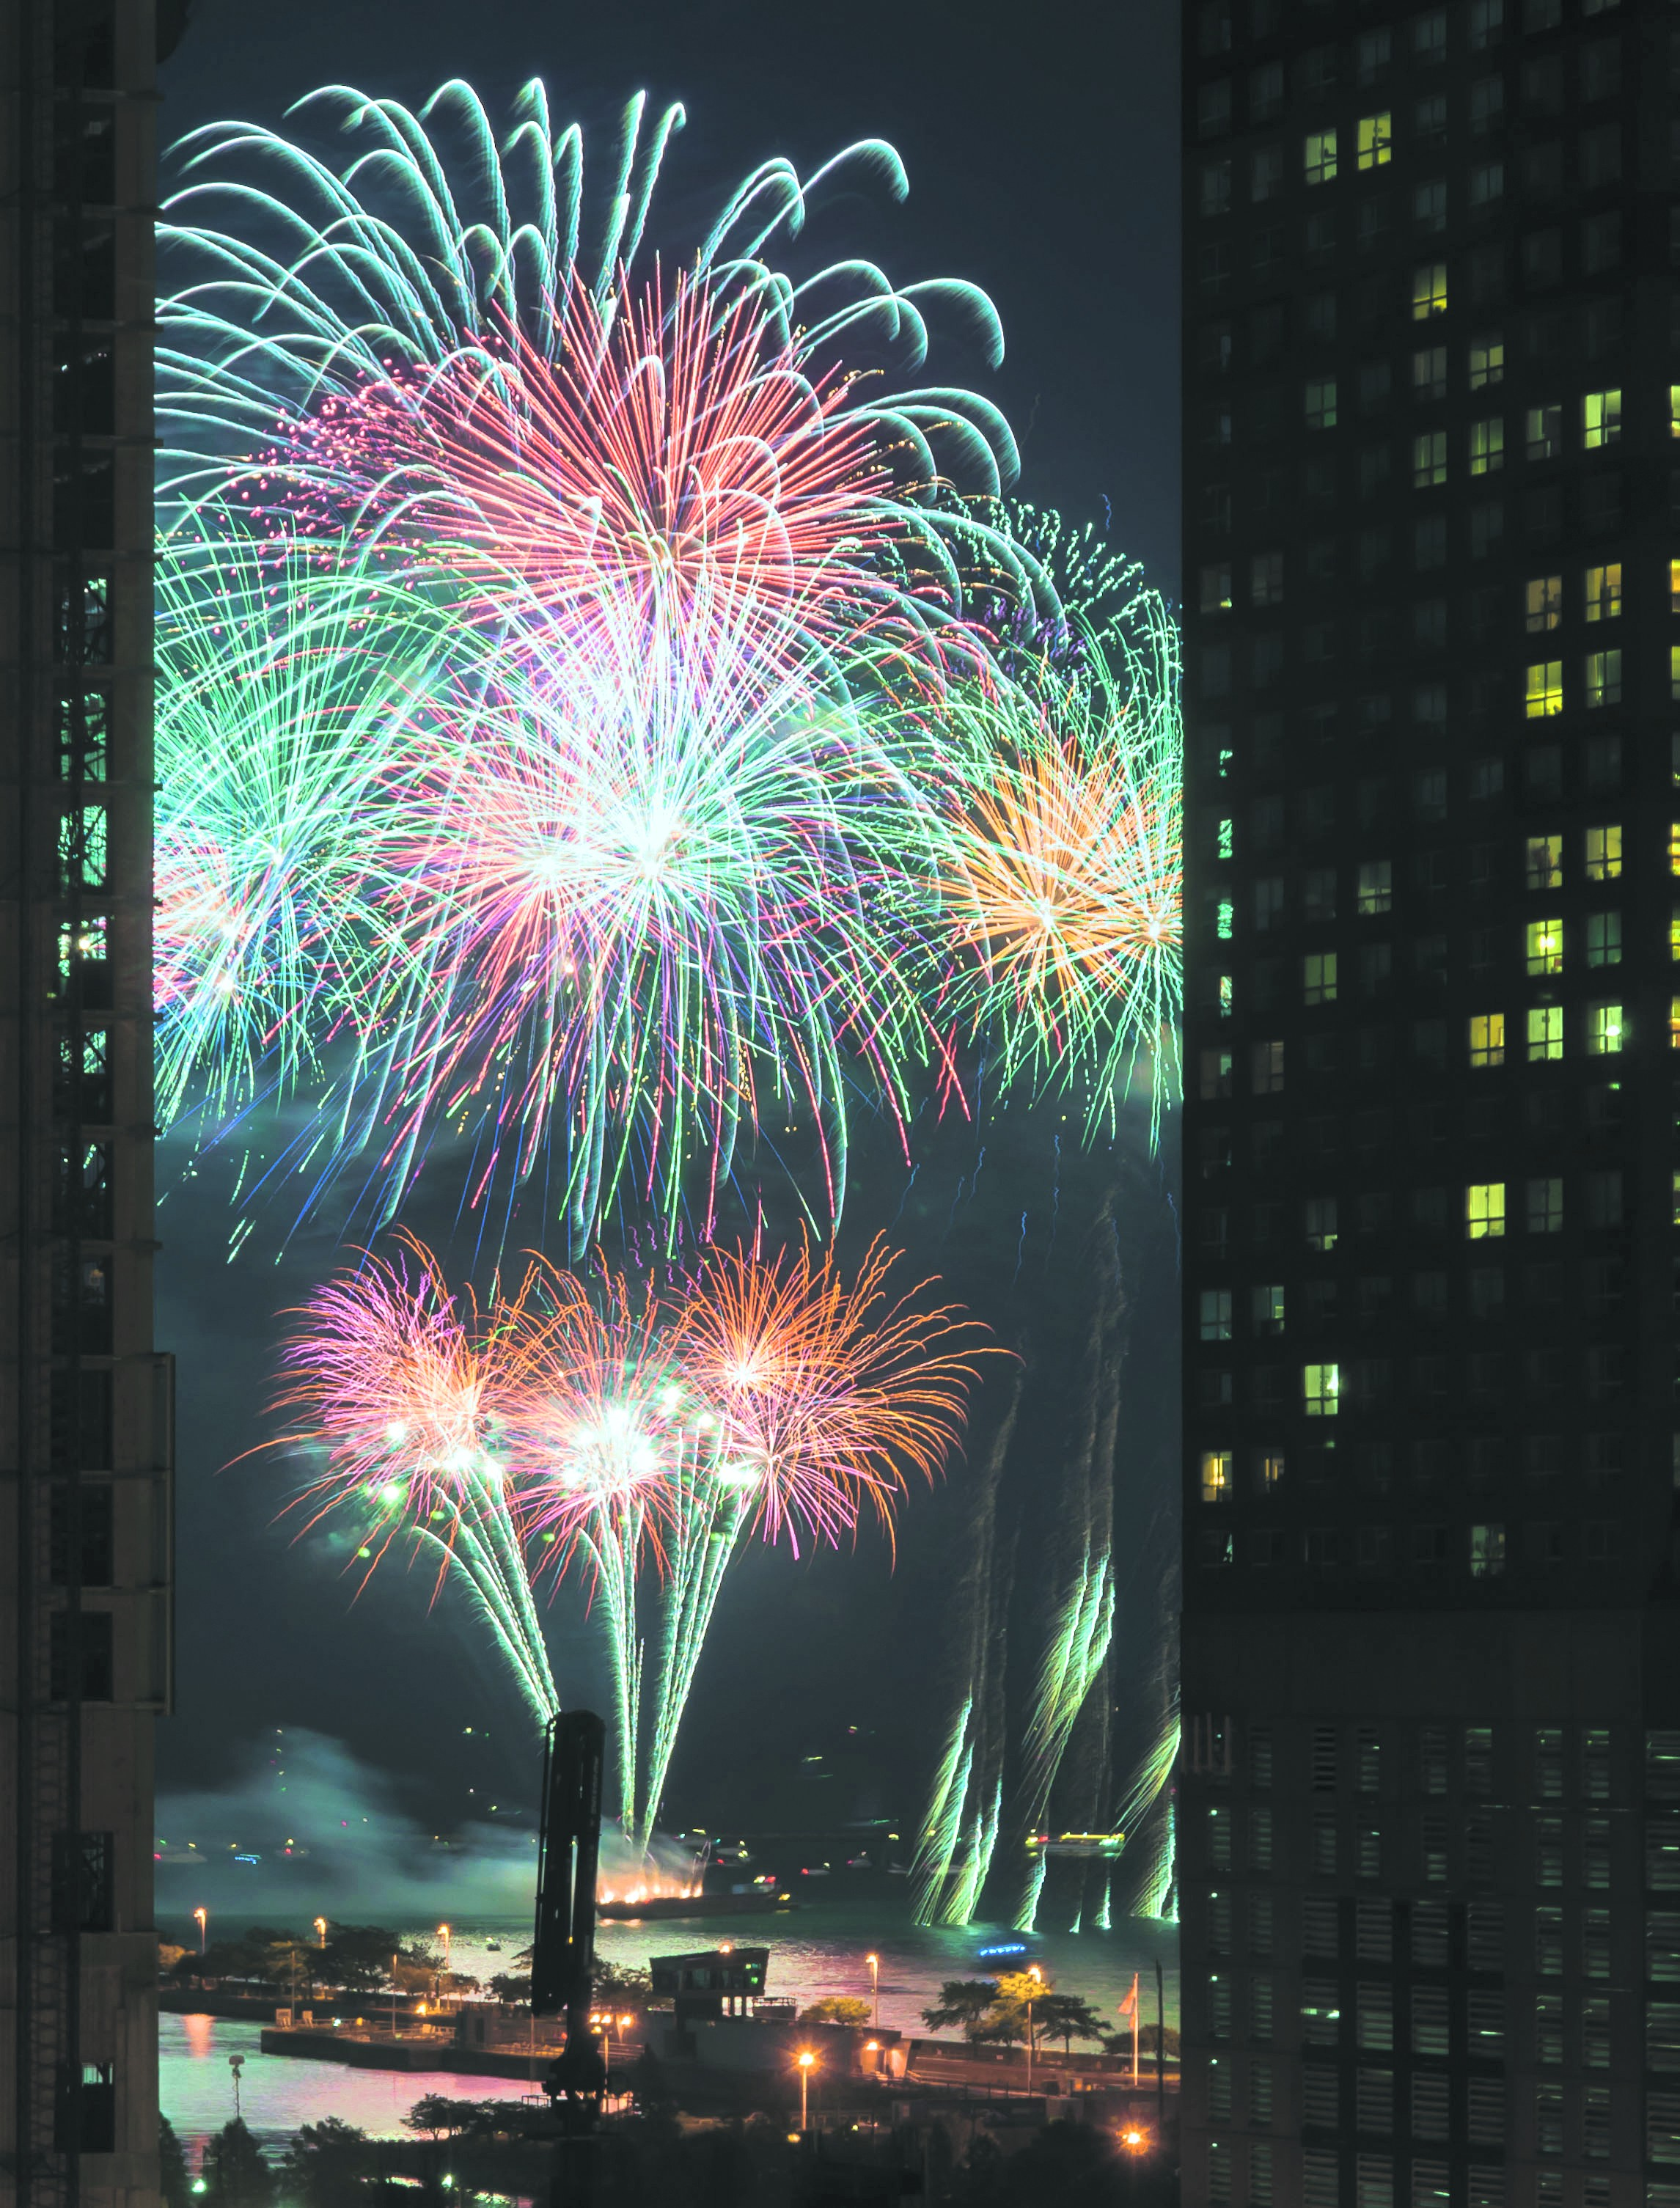 e9ea11736bd click to enlarge Navy Pier fireworks will be dy-no-mite! They begin on  Tuesday 7